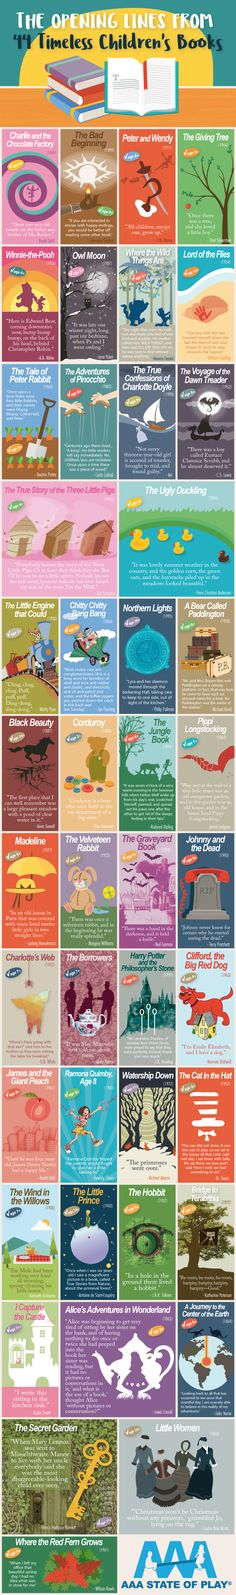 Great idea for a bulletin board: Opening Lines. Here's a start for you! The Opening Lines from 44 Timeless Children's Books